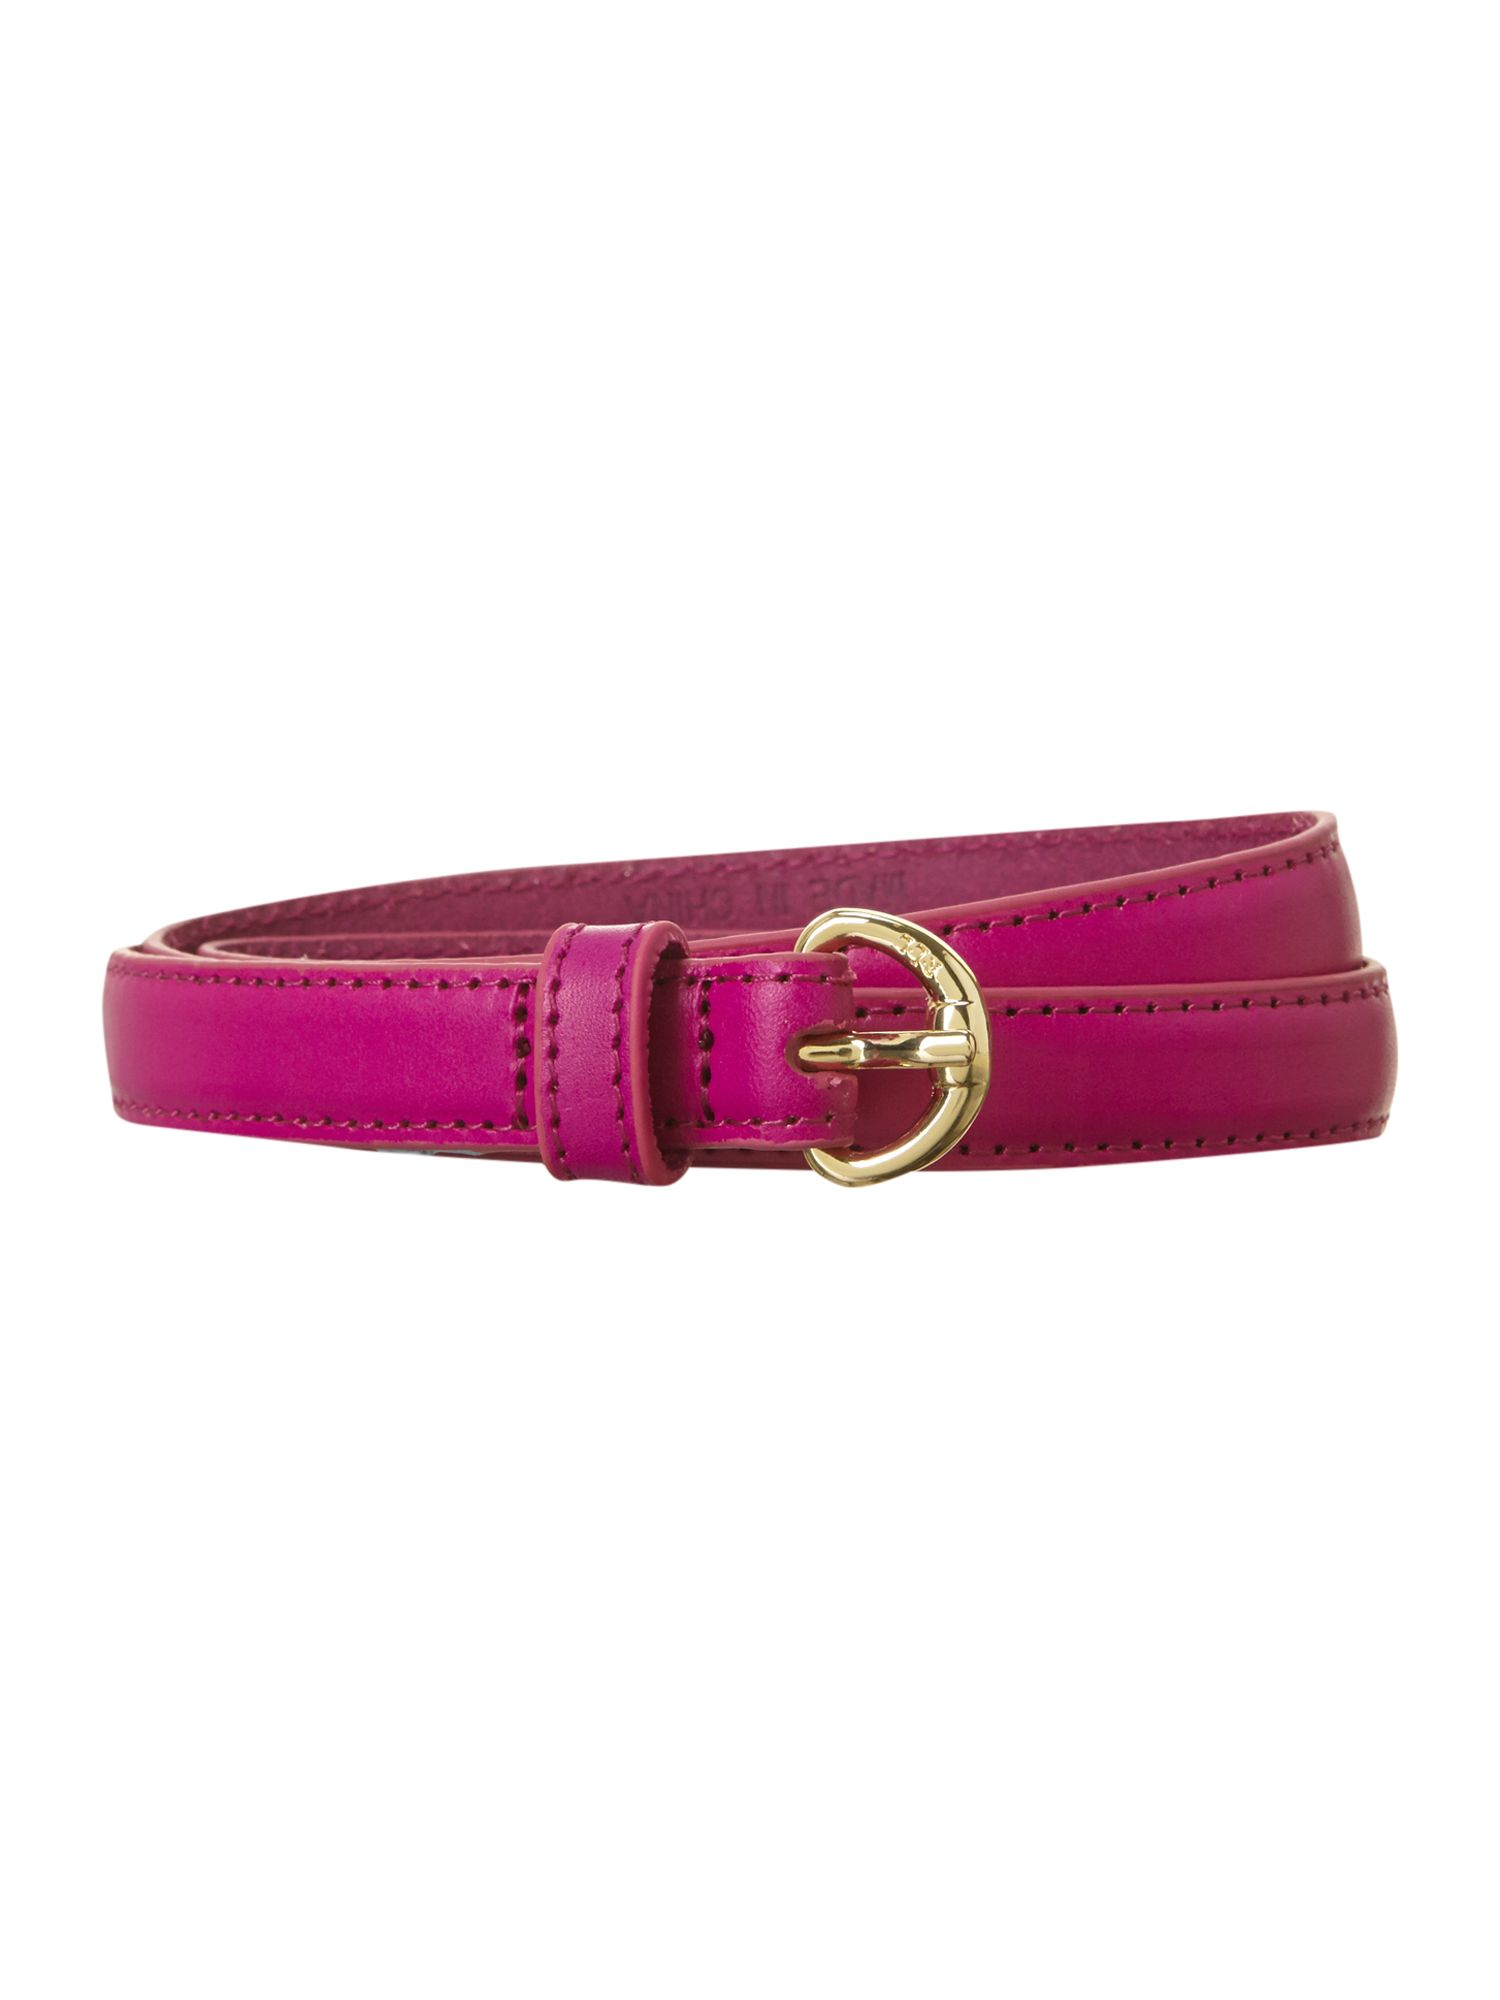 Thin belt with buckle